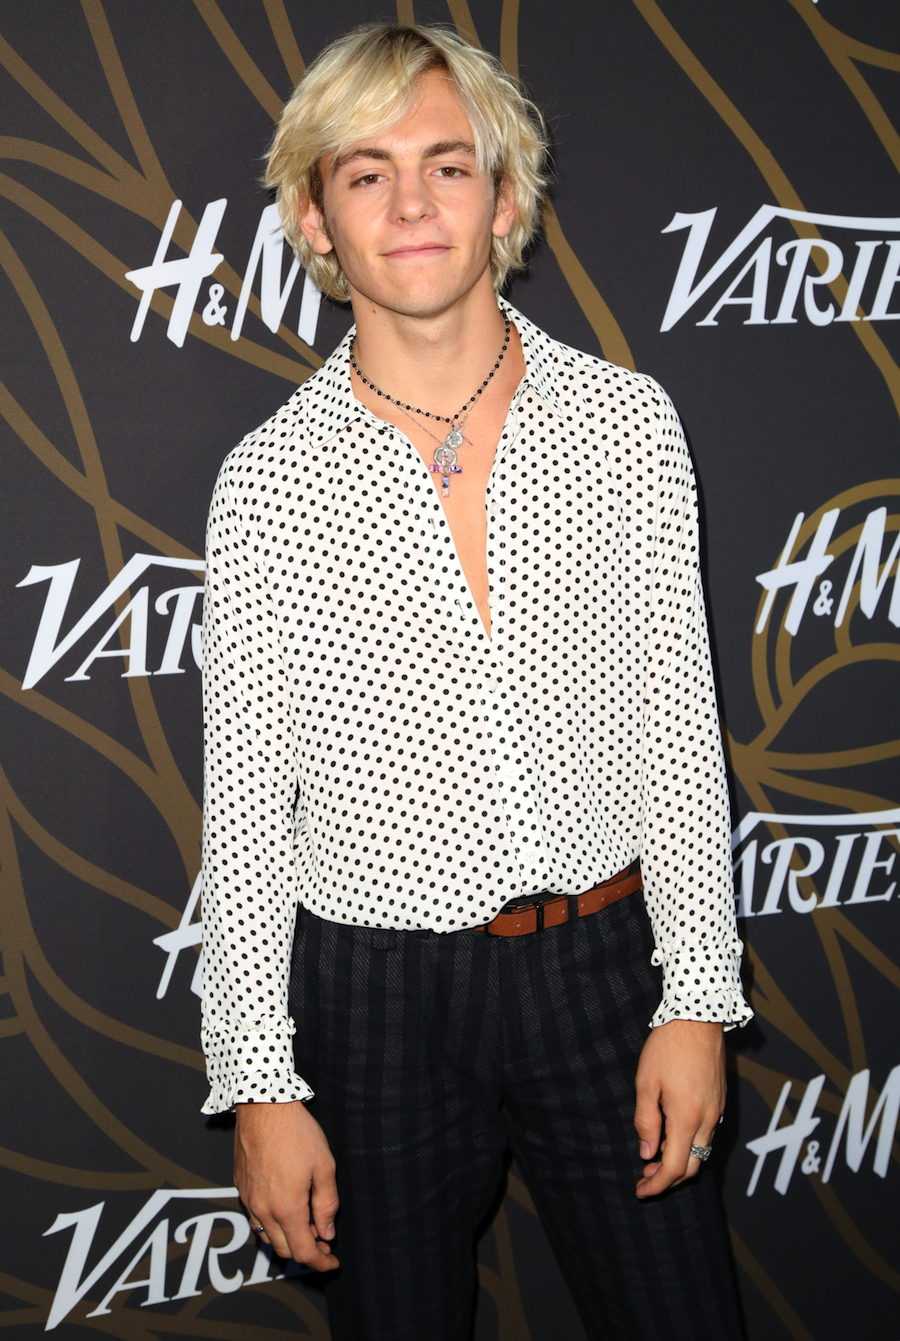 Ross Lynch Makes The Leap From Disney Darling To Serial